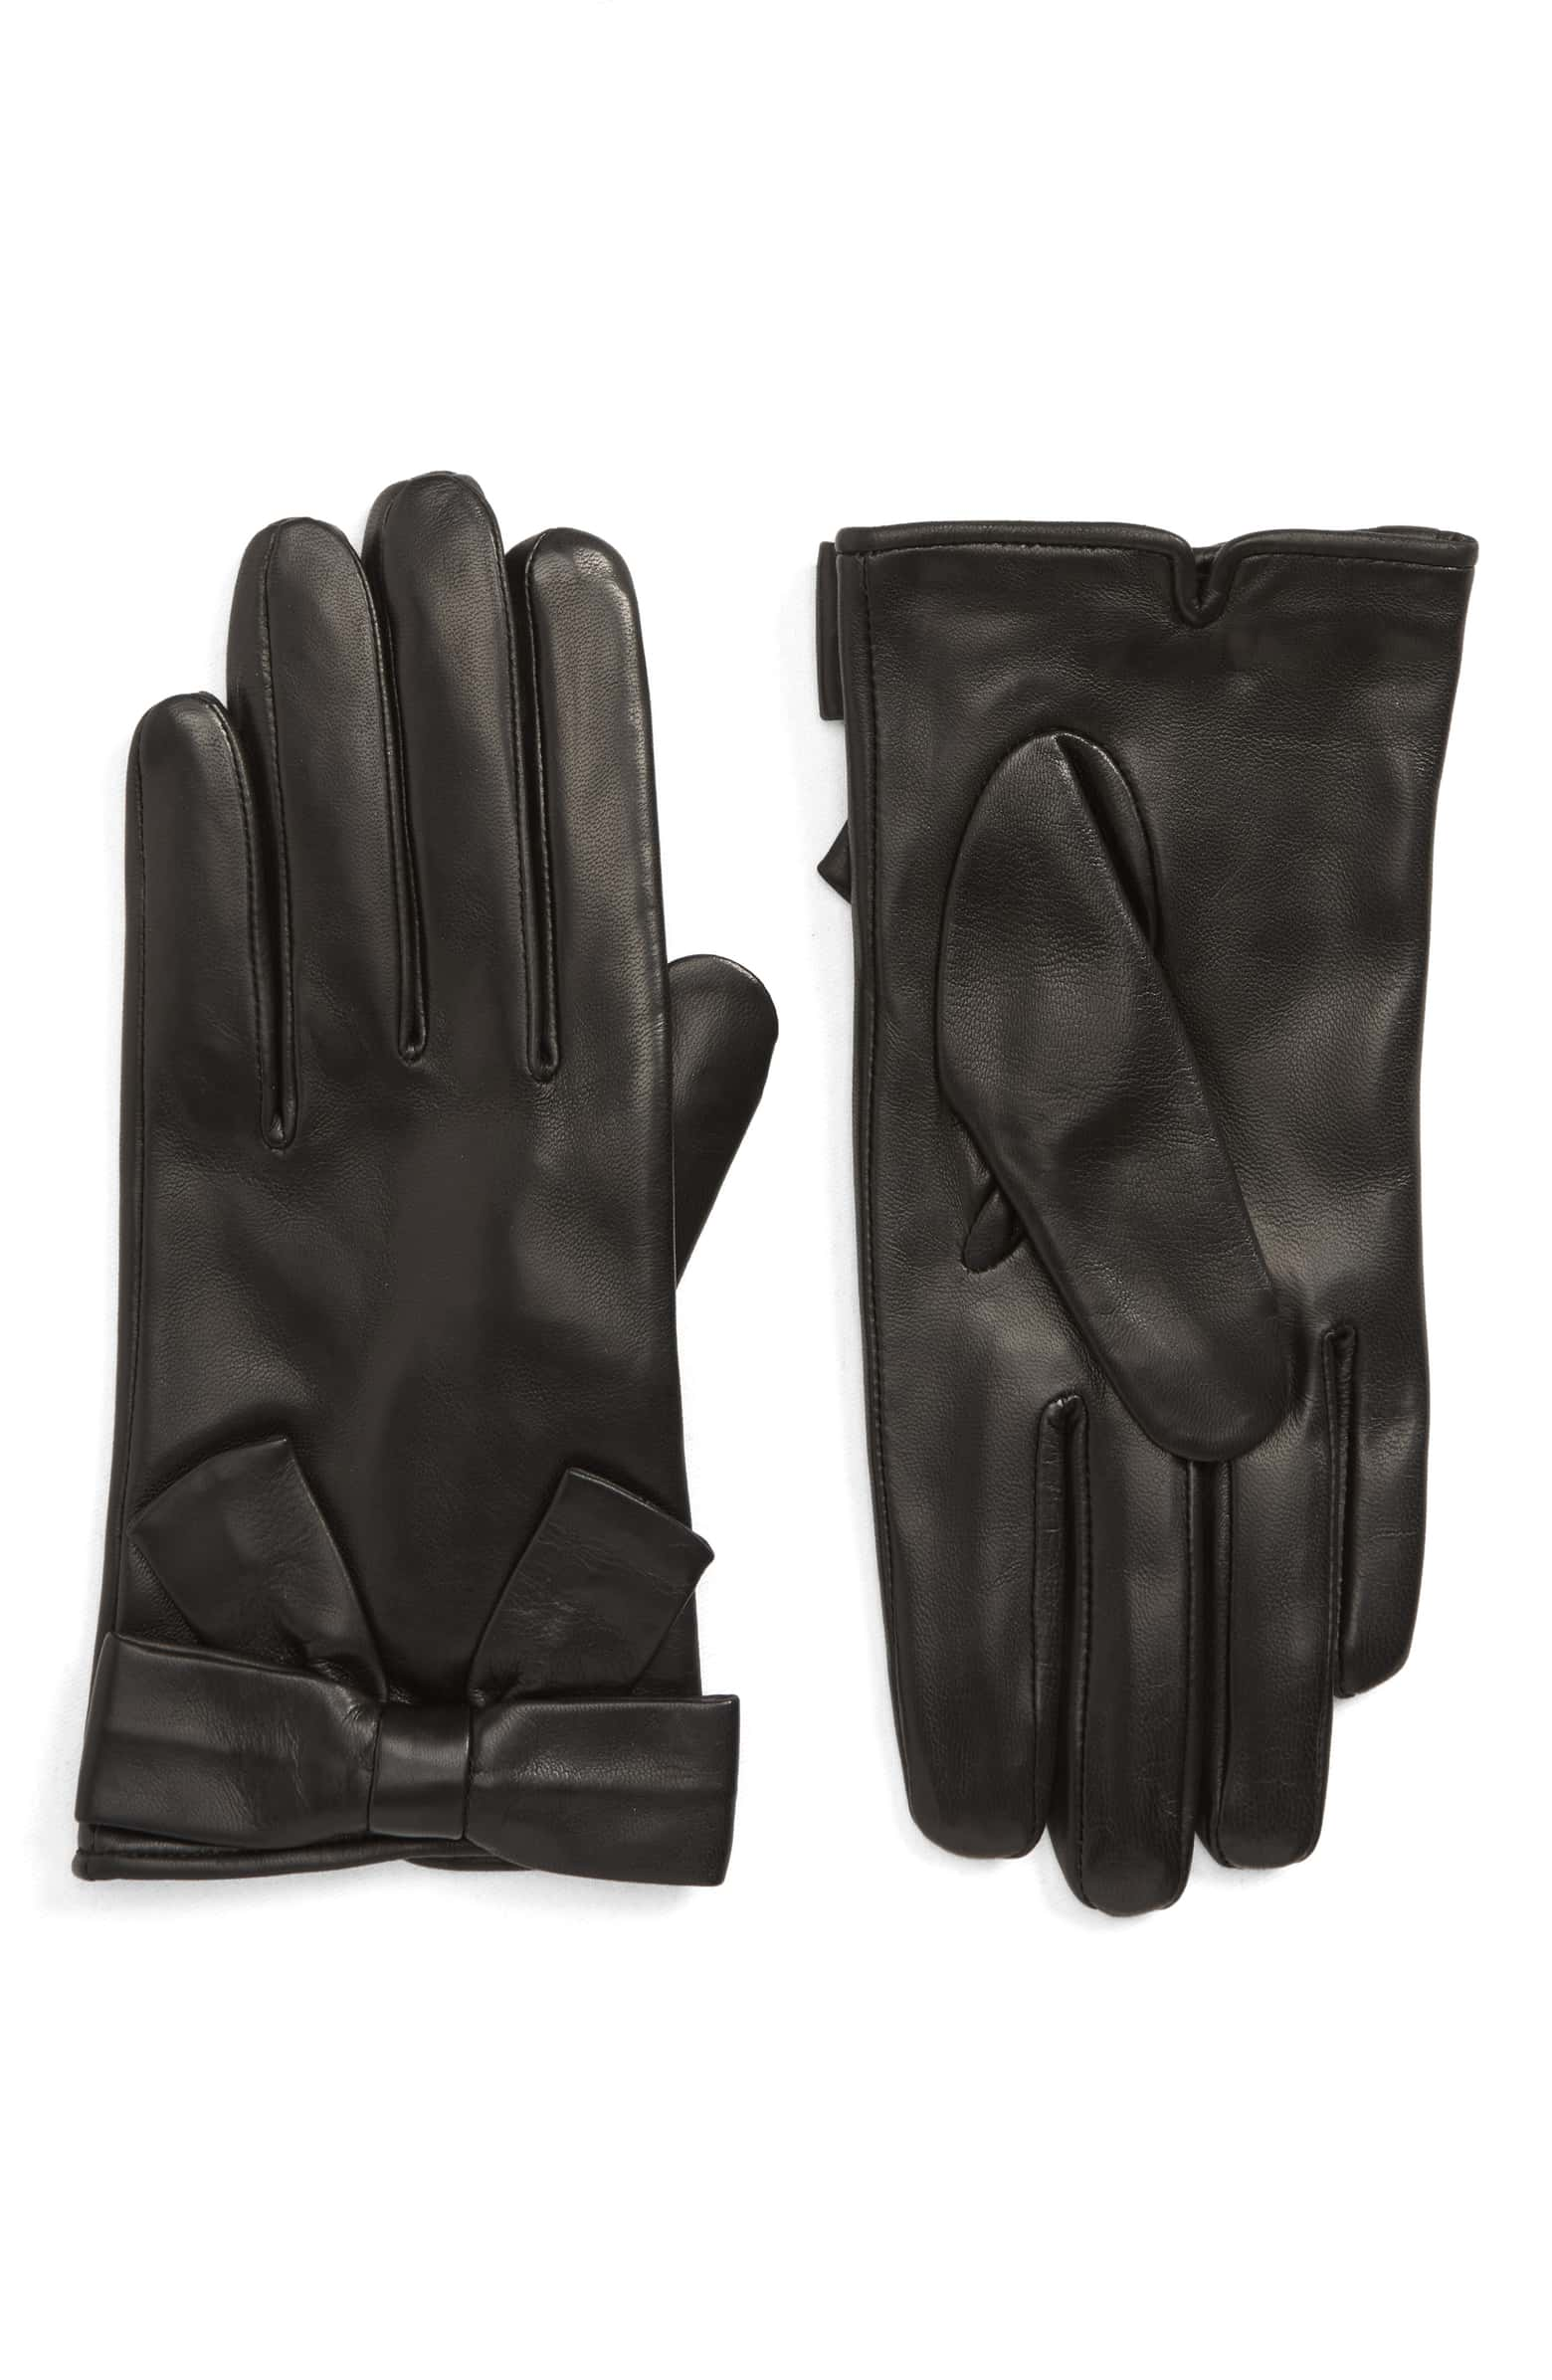 Nordstrom: Leather Bow Gloves